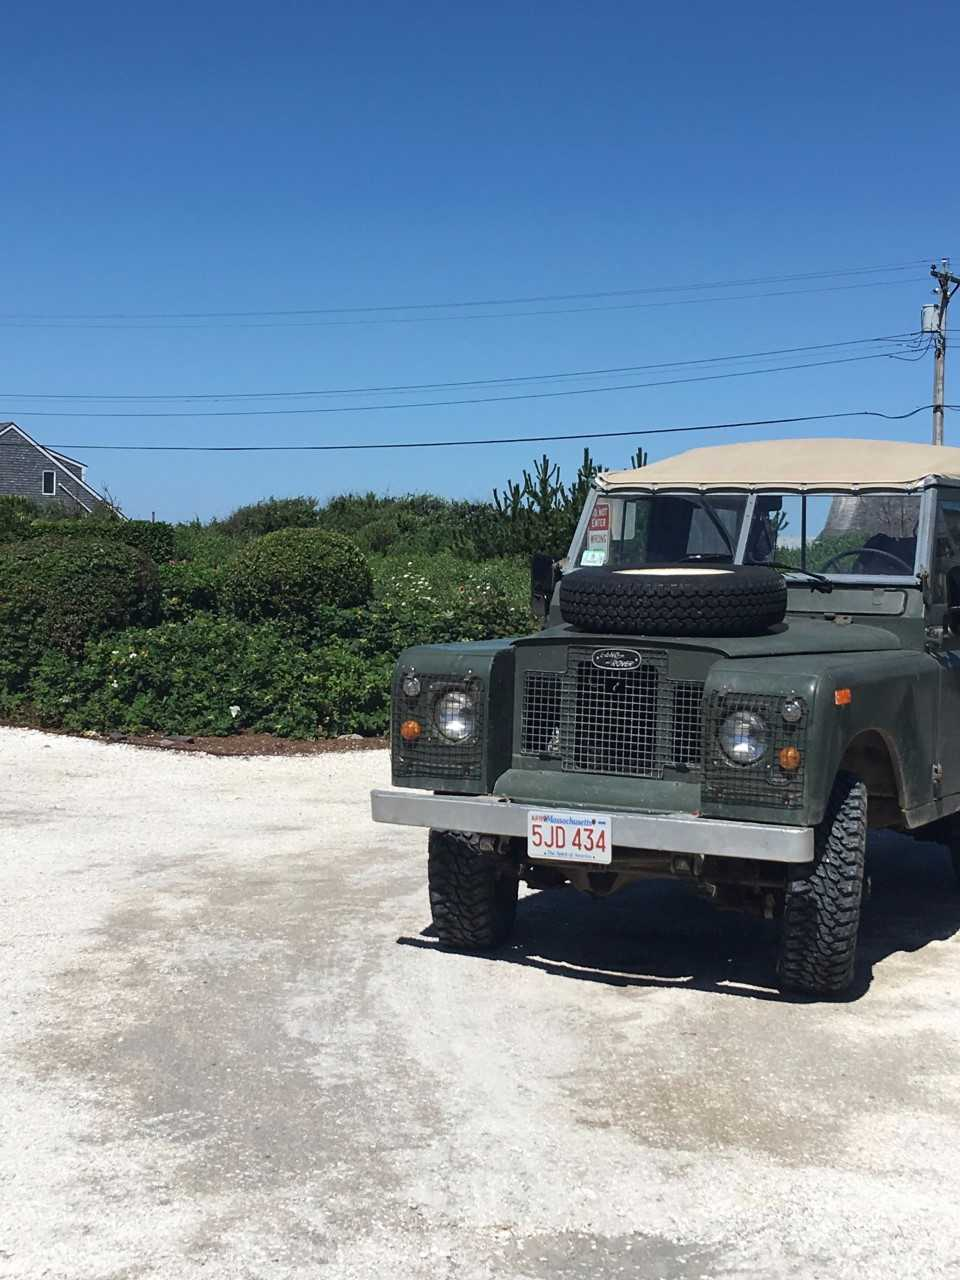 Love the charm of all the old cars on the island. Makes me want to get a Wagoneer or an old Land Rover. This one is for sale!